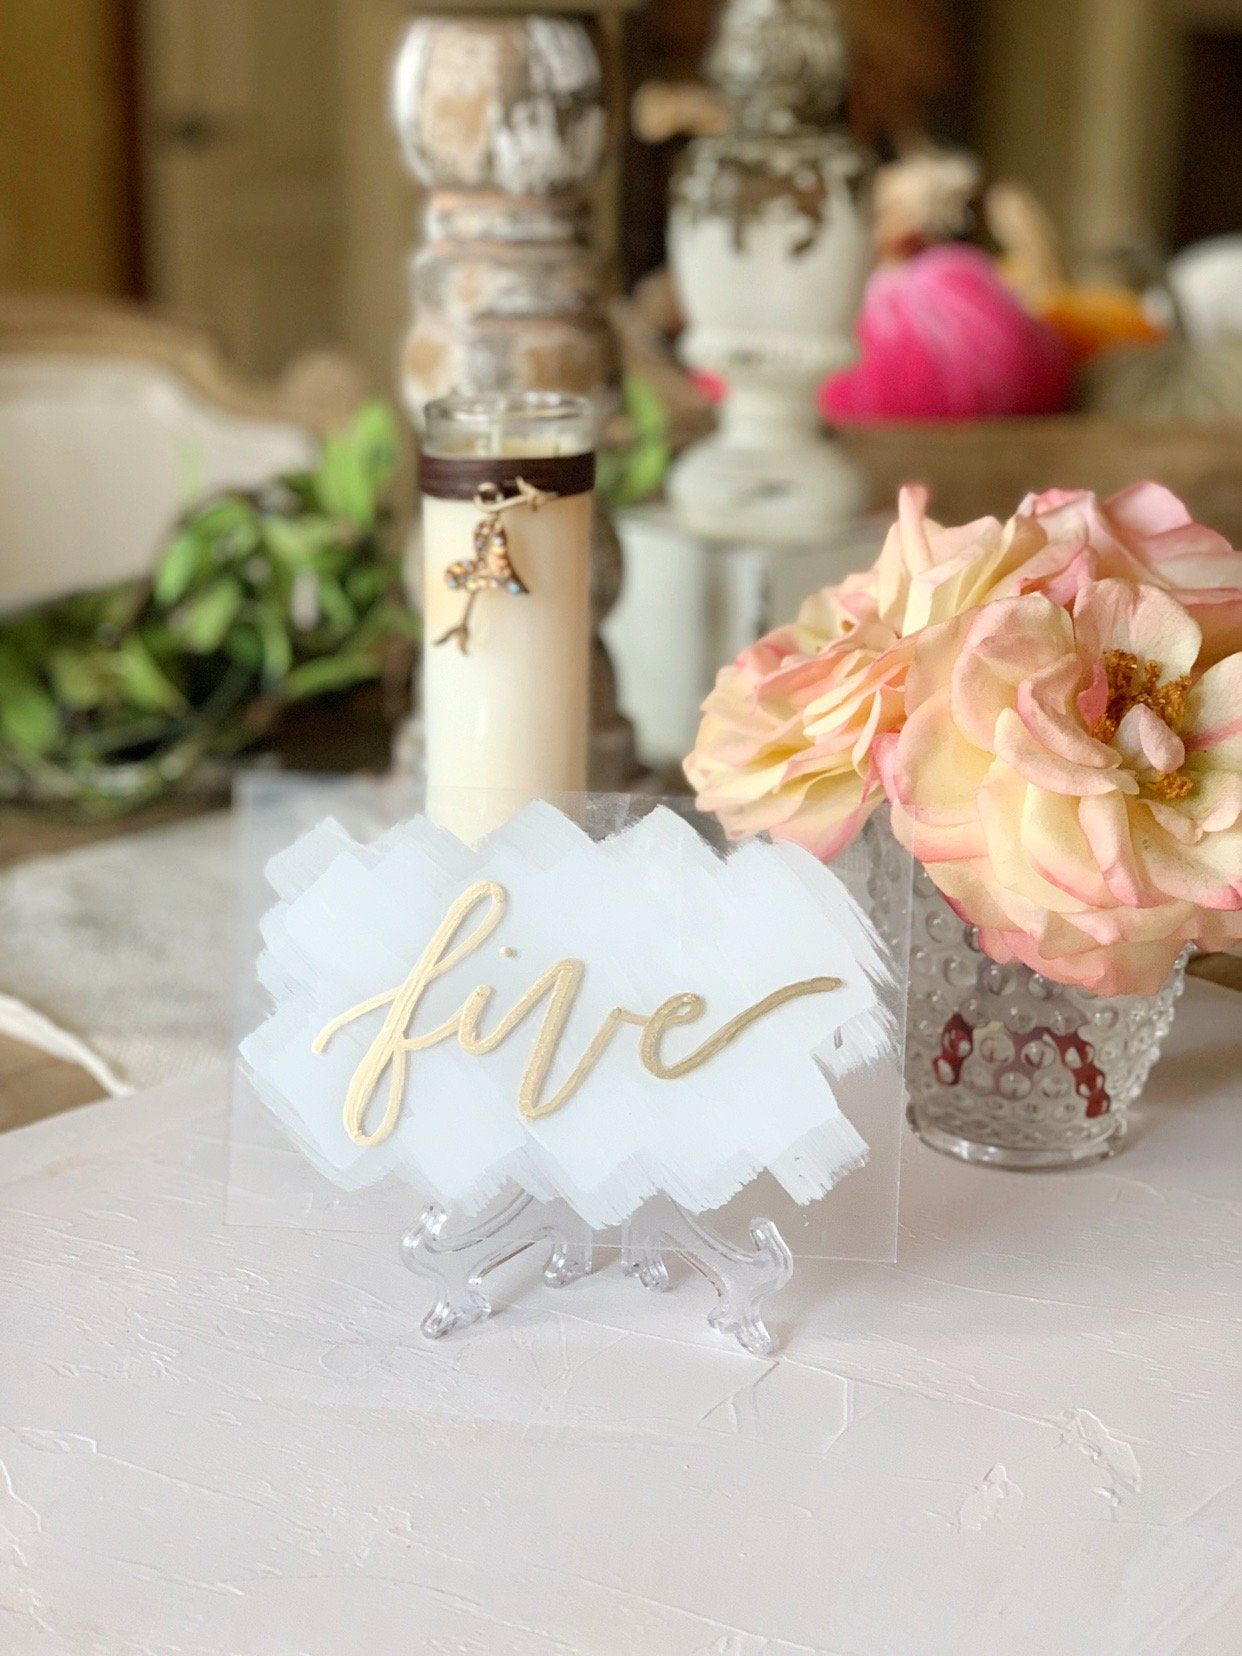 Pin on Terrific Table Numbers